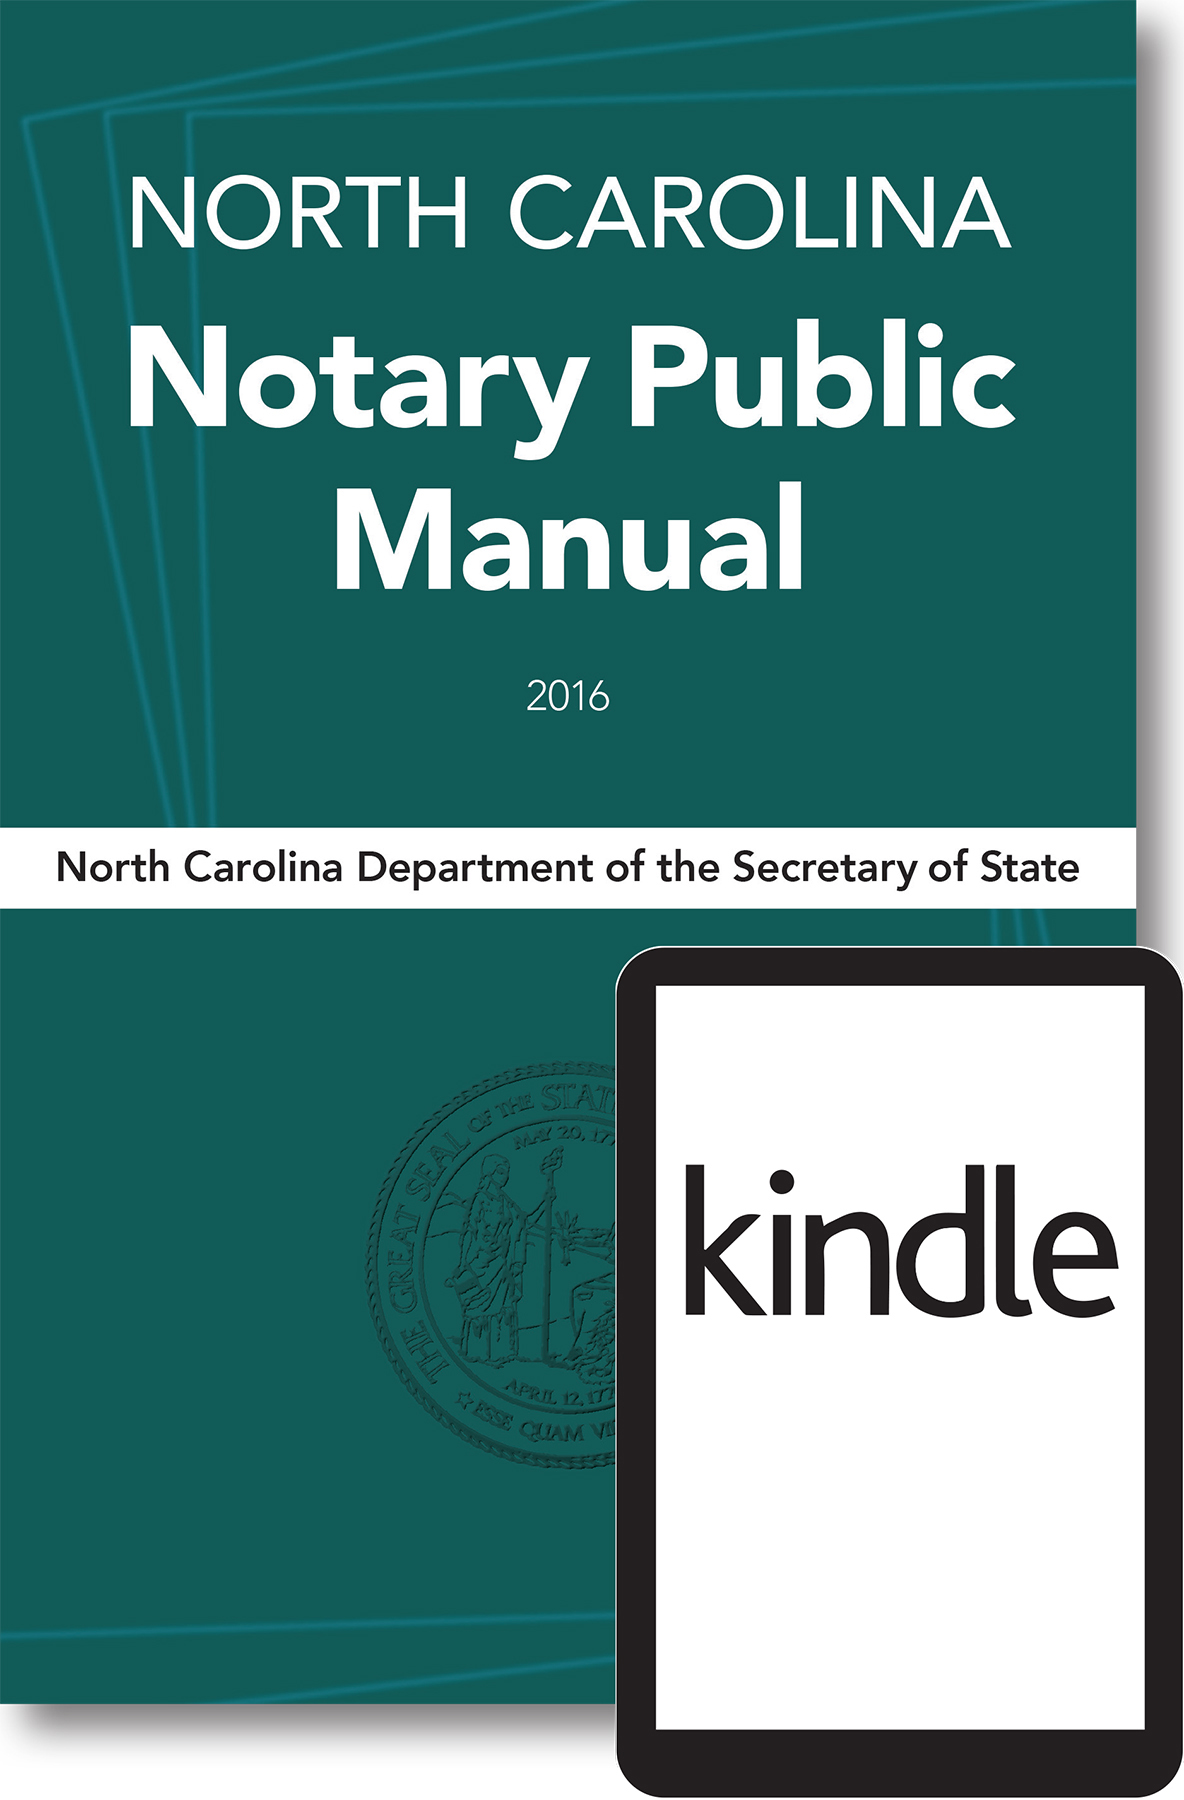 Cover image for E-Book Download Item: North Carolina Notary Public Manual, 2016 (Mobi file format for Kindle e-Reading devices)